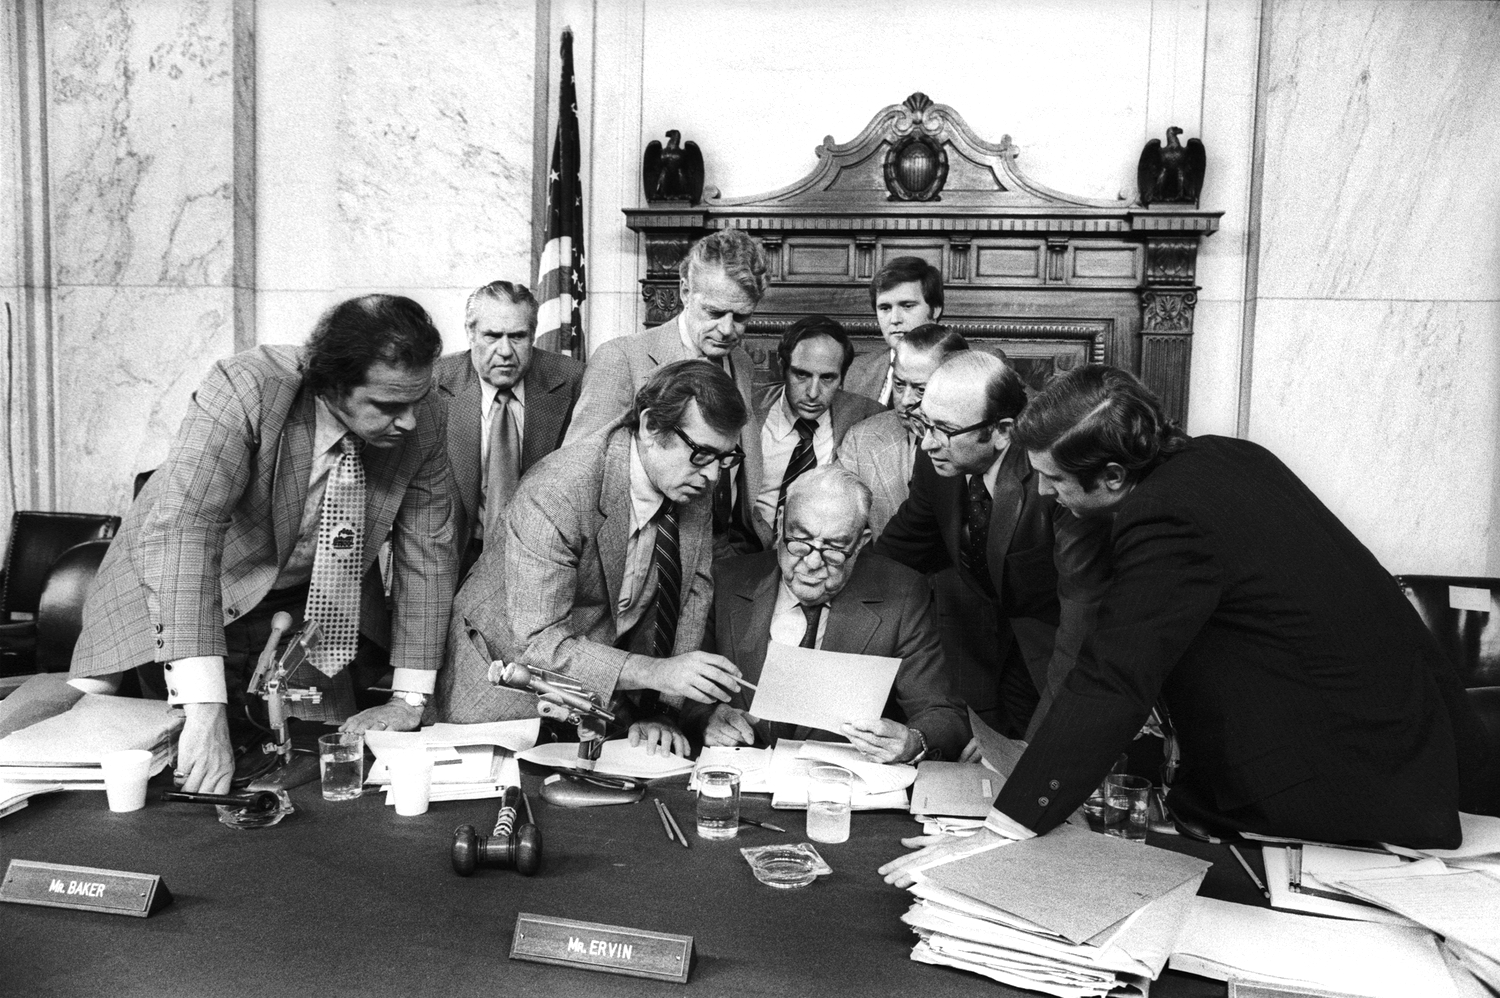 The Watergate Hearings: (l to r) Fred Thompson, Howard Baker, Edward Gurney, Sam Erwin (seated center) Samuel Dash, and unidentified) in discussion.  August 9, 1974  © Jean-Pierre Laffont